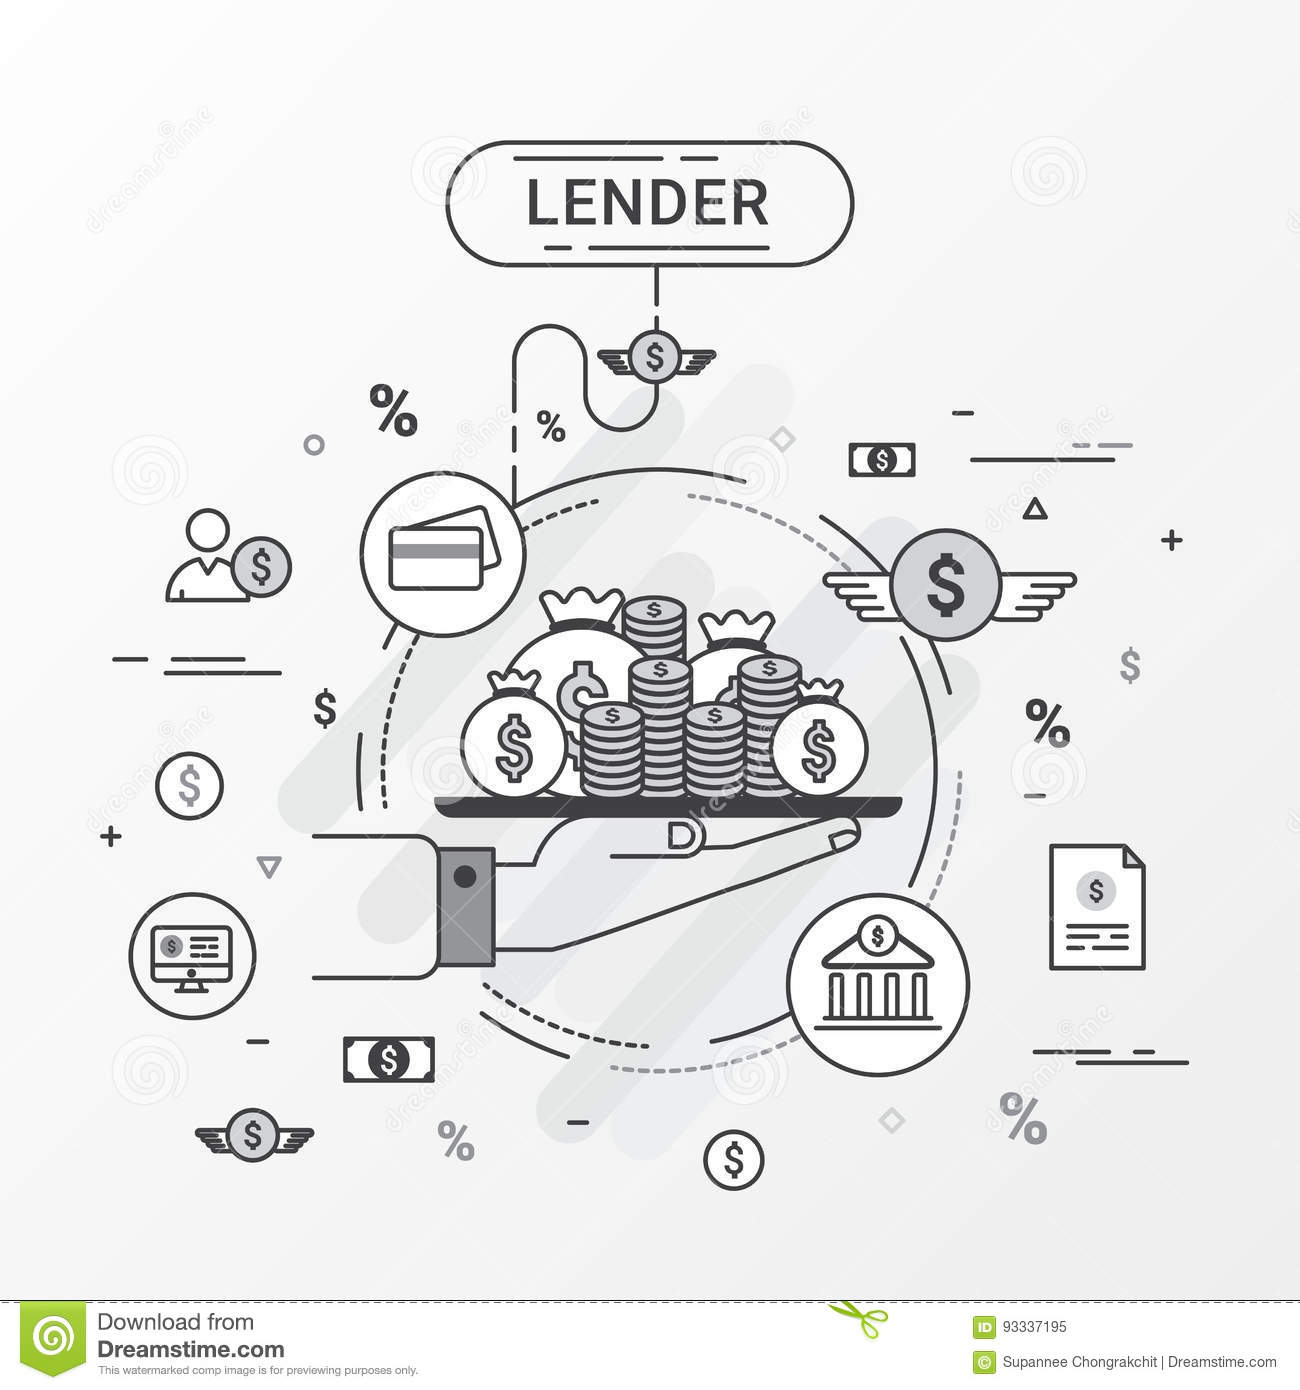 Lender infographics concept. Loan lending of money from bank, personal loans, credit card, organization or entity.